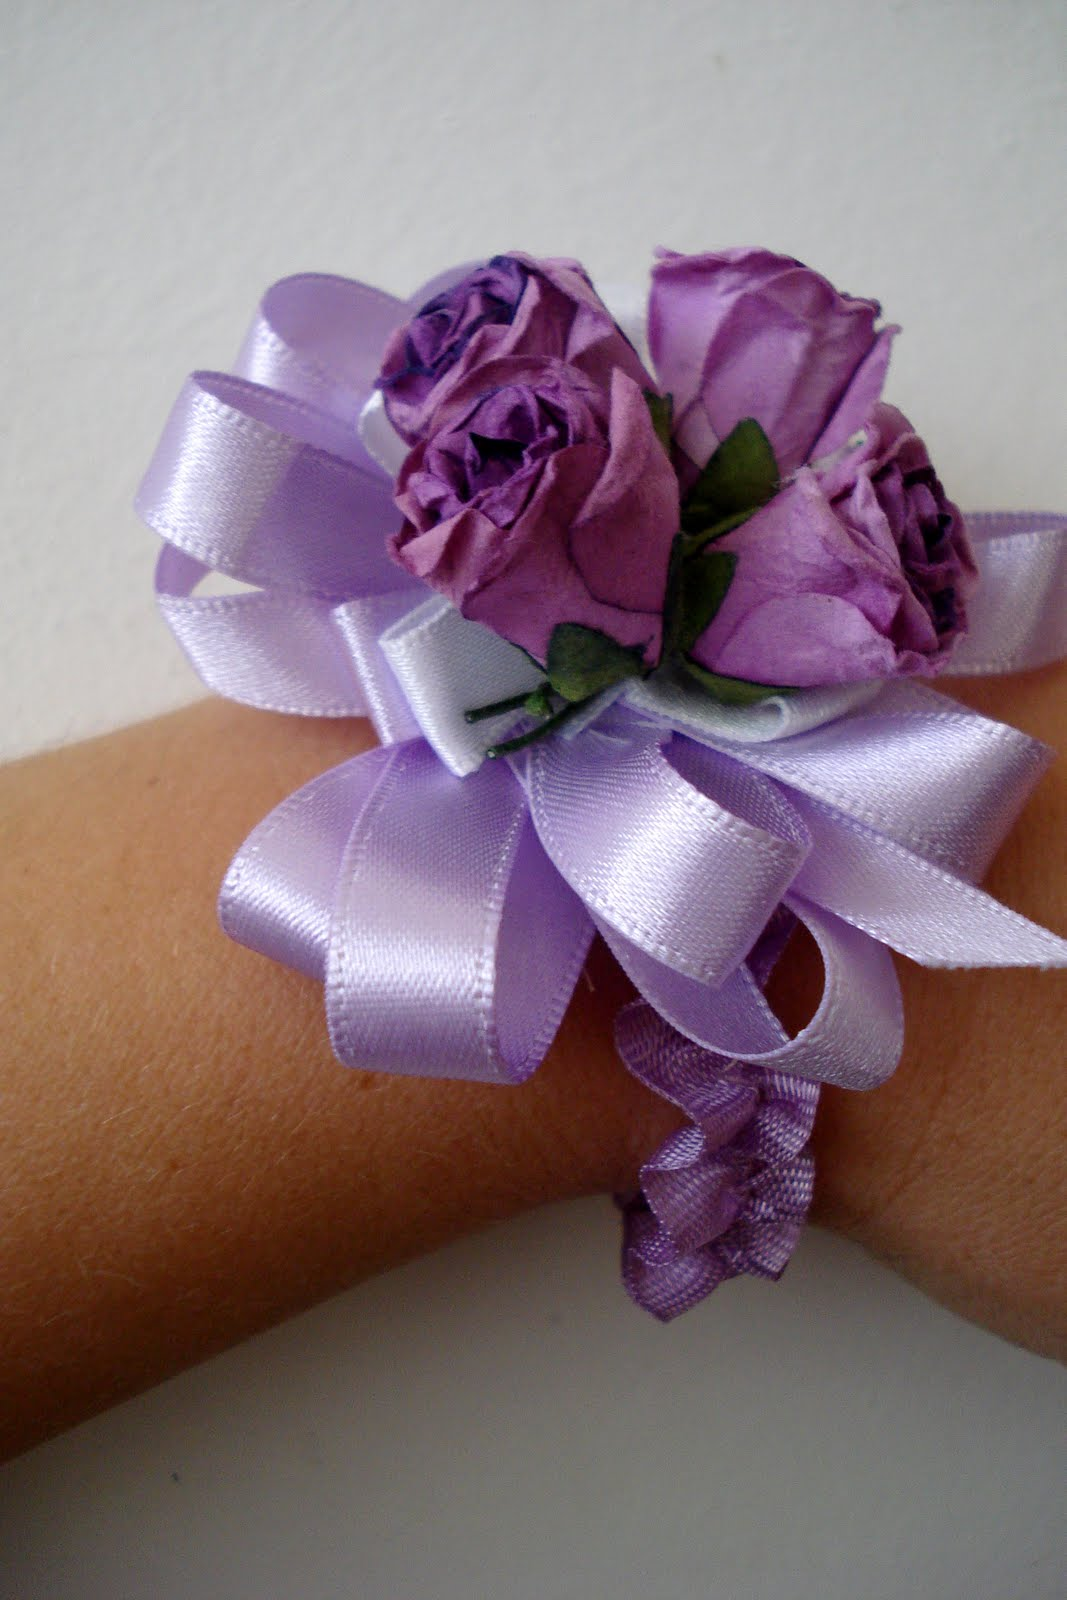 Little Treasures: Wrist corsage tutorial